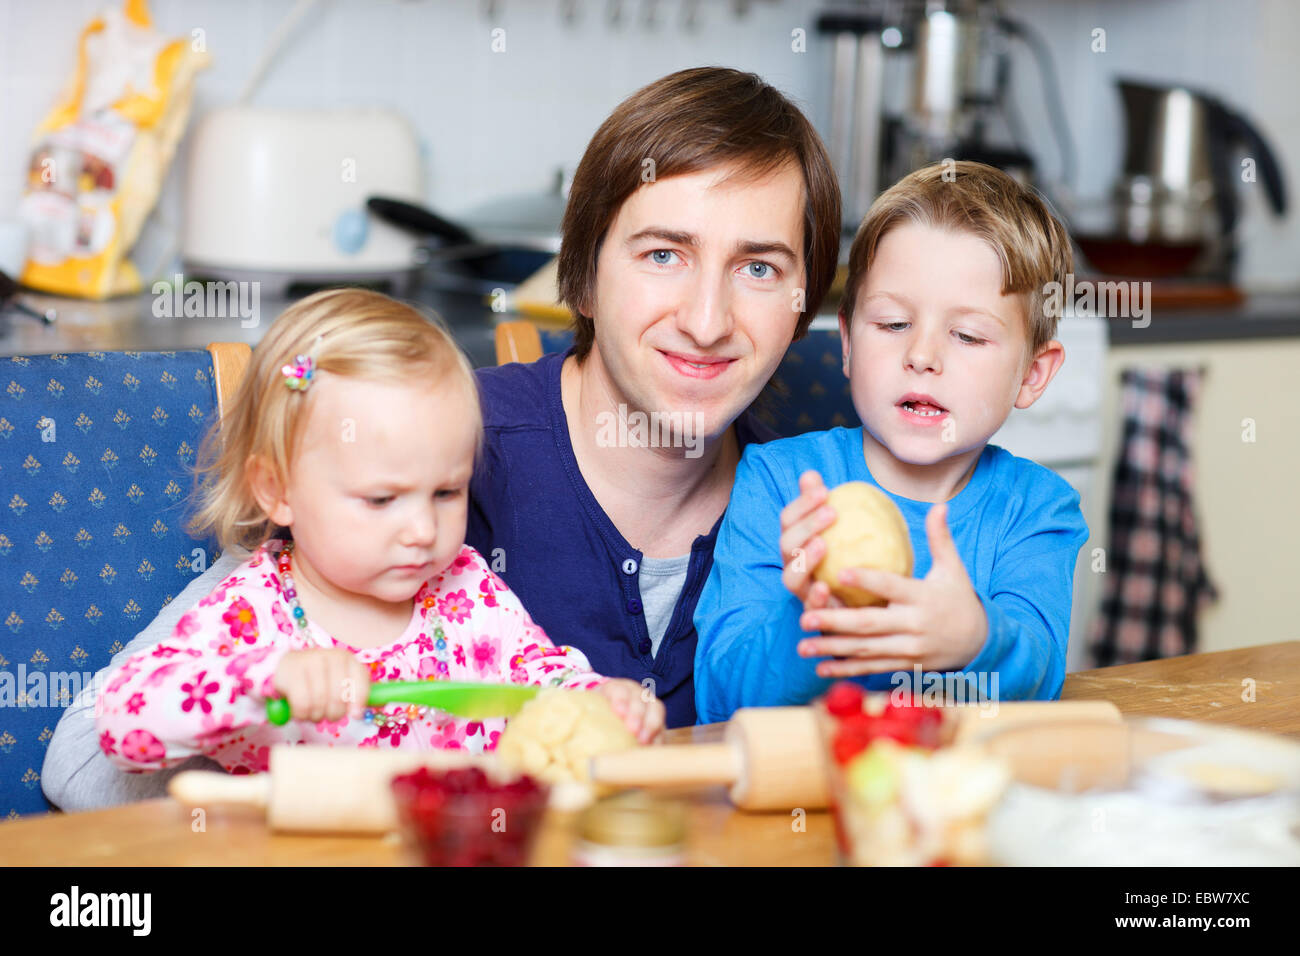 father baking biscuits with his daughter and his son - Stock Image